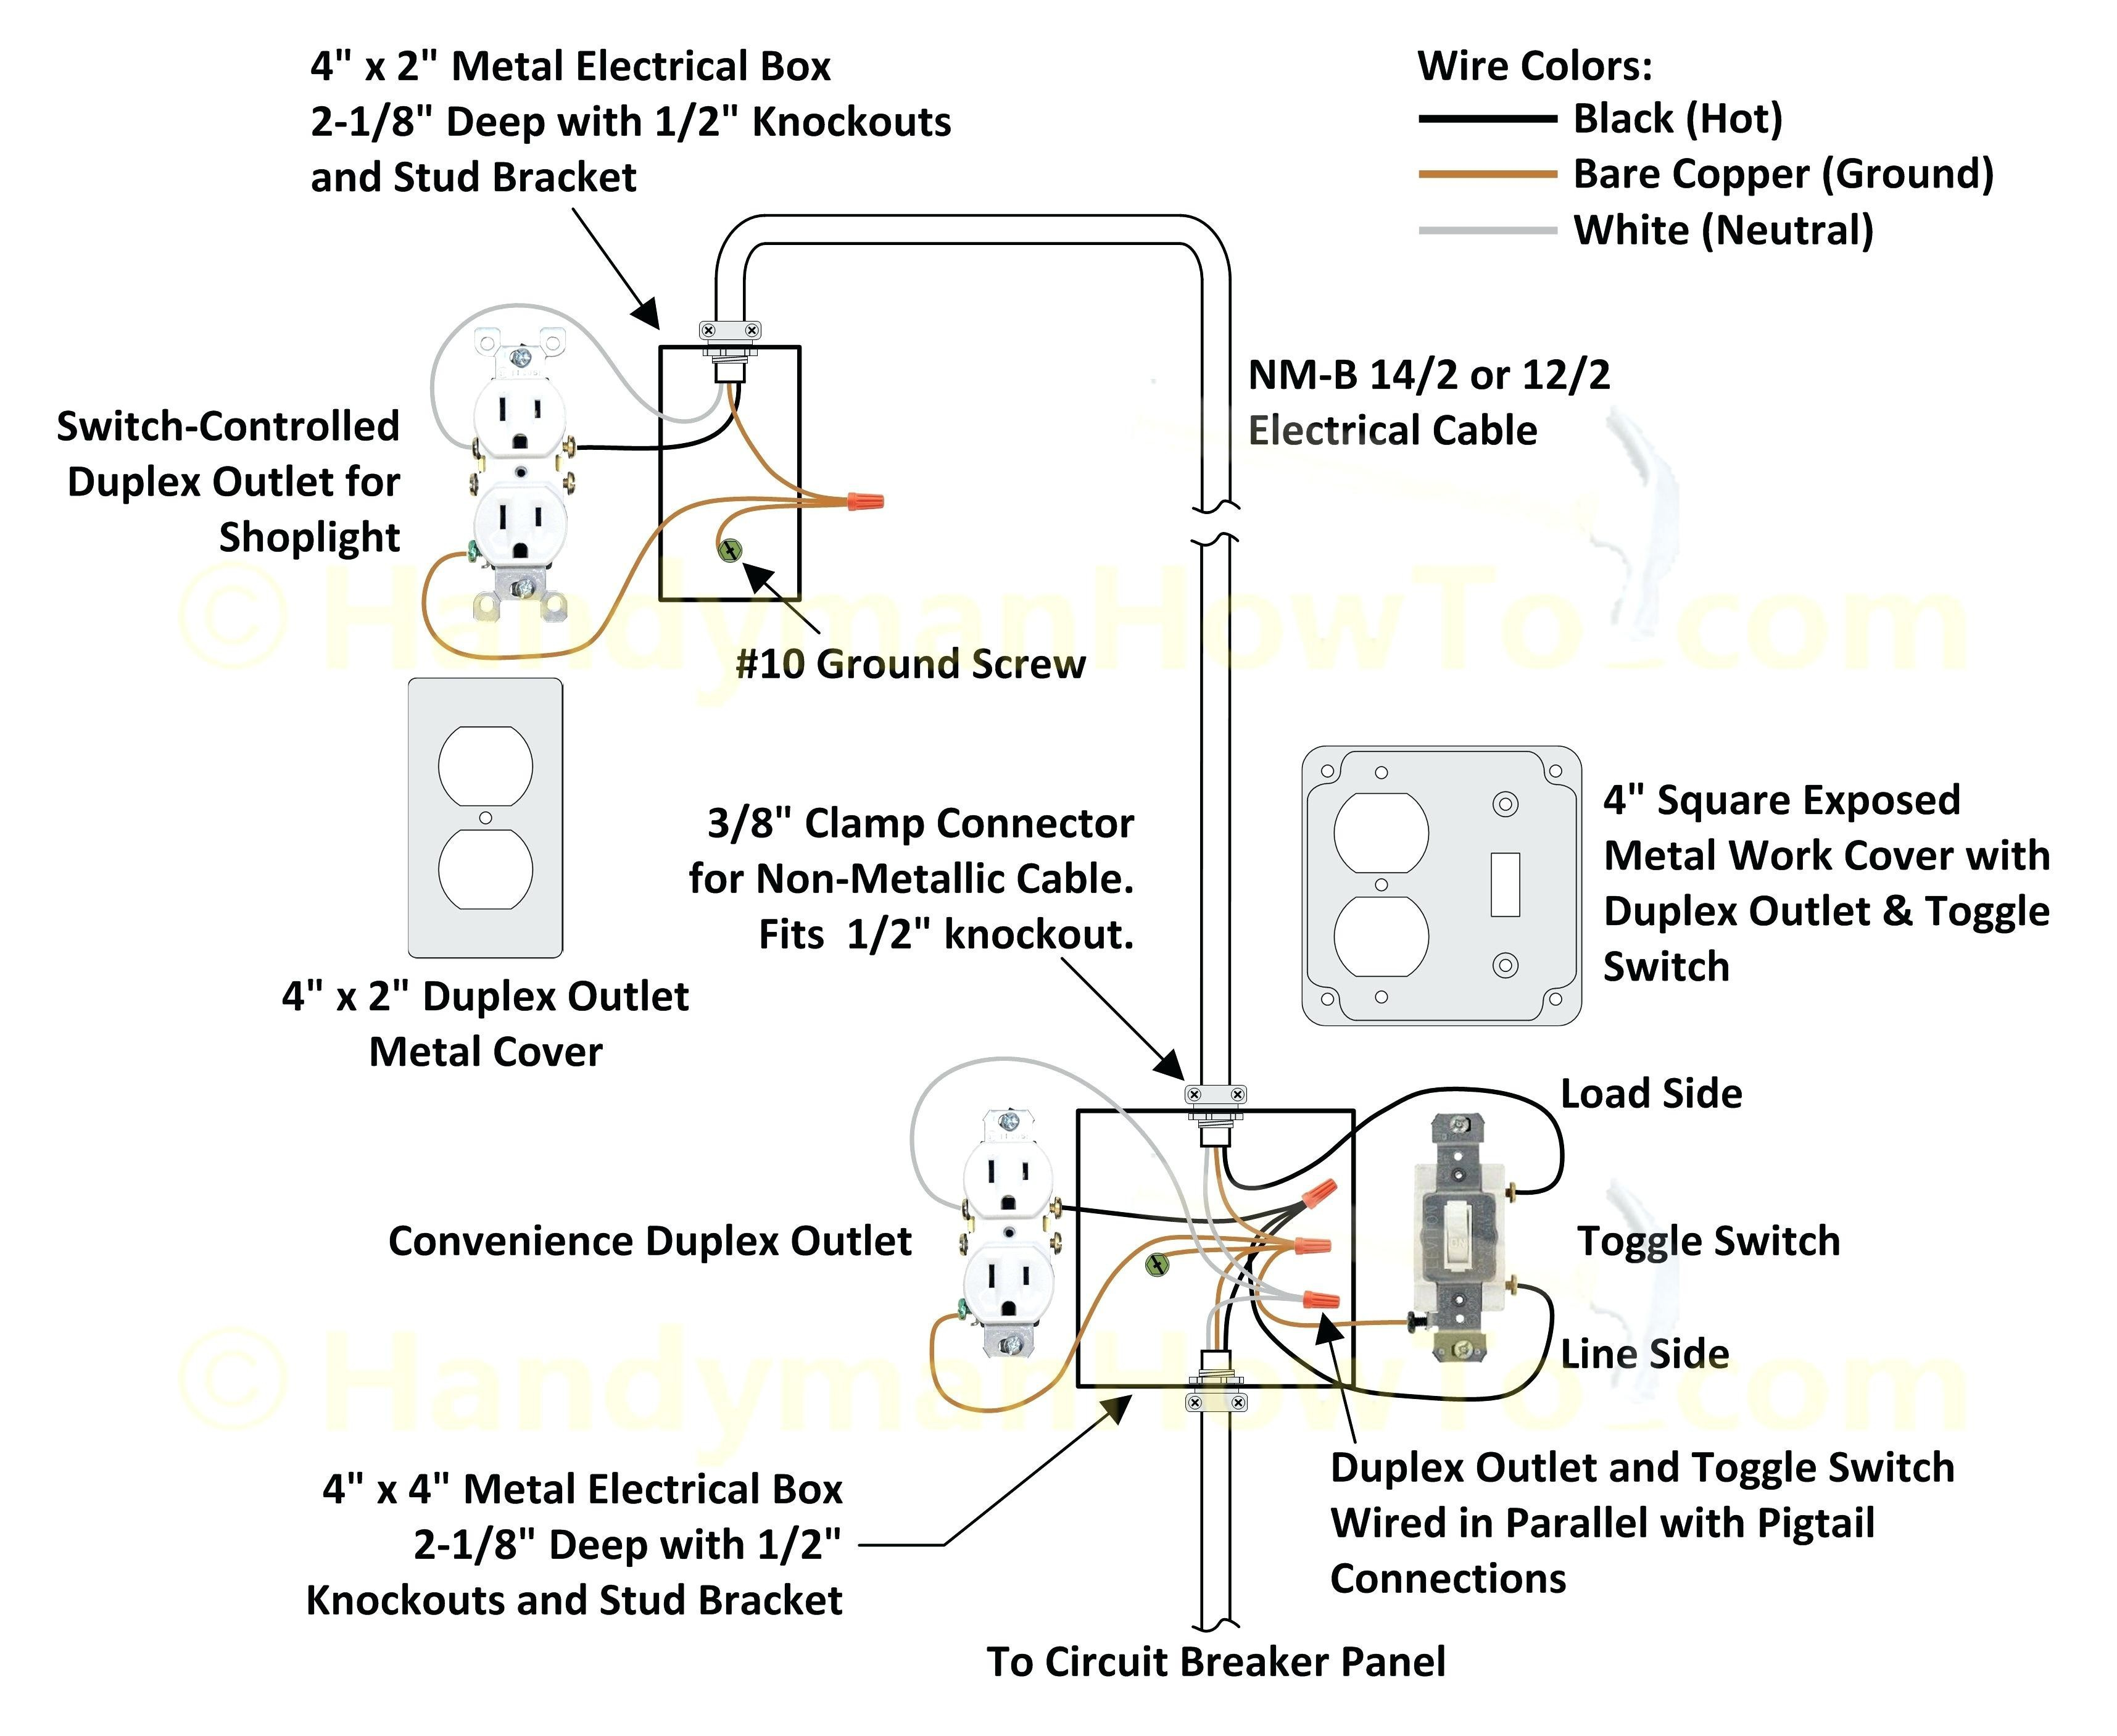 3 sd ceiling fan switch wiring diagram in the 313e three sd fan wiring diagram wiring library  313e three sd fan wiring diagram